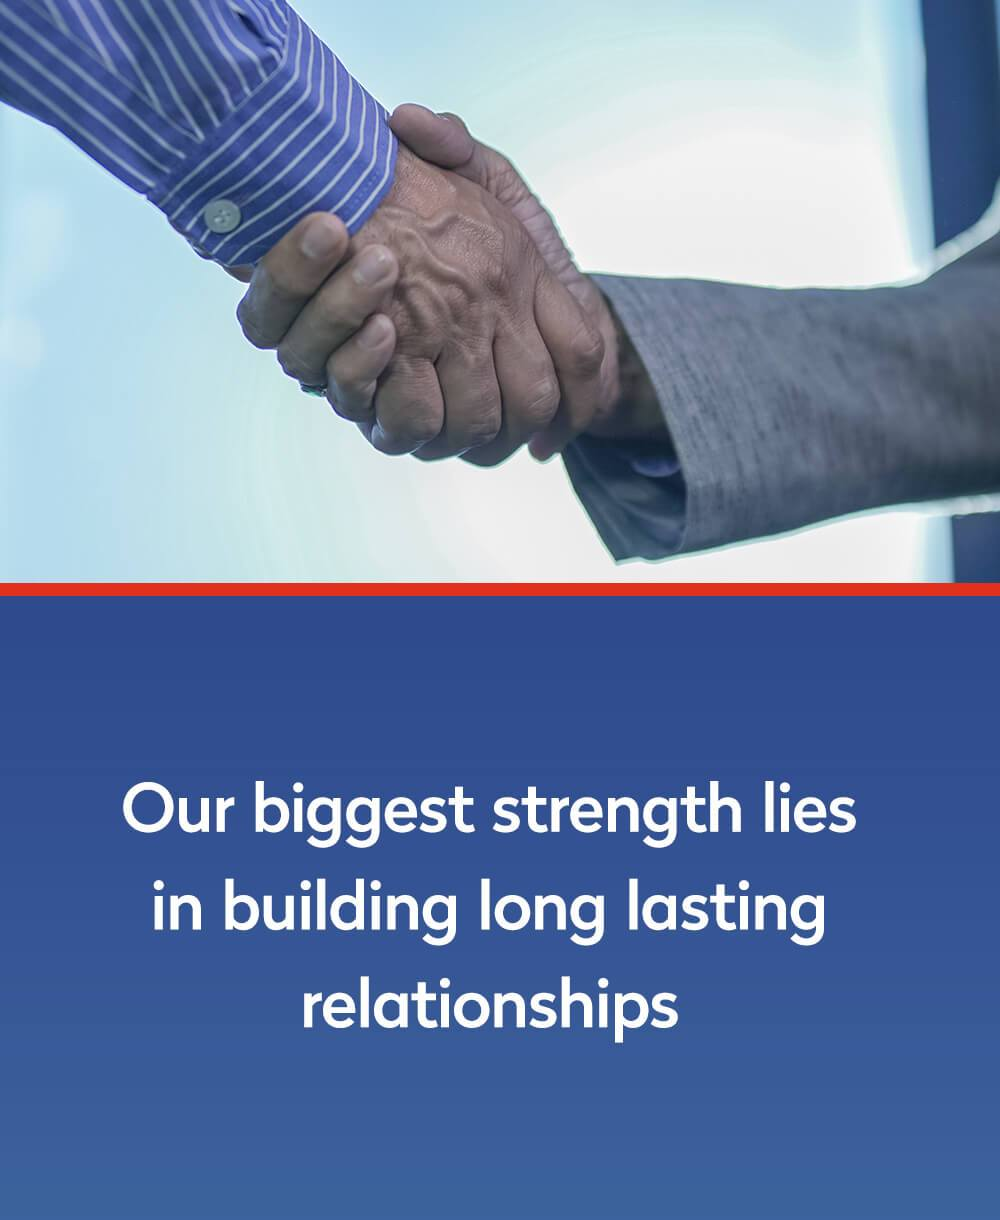 Long lasting relationships